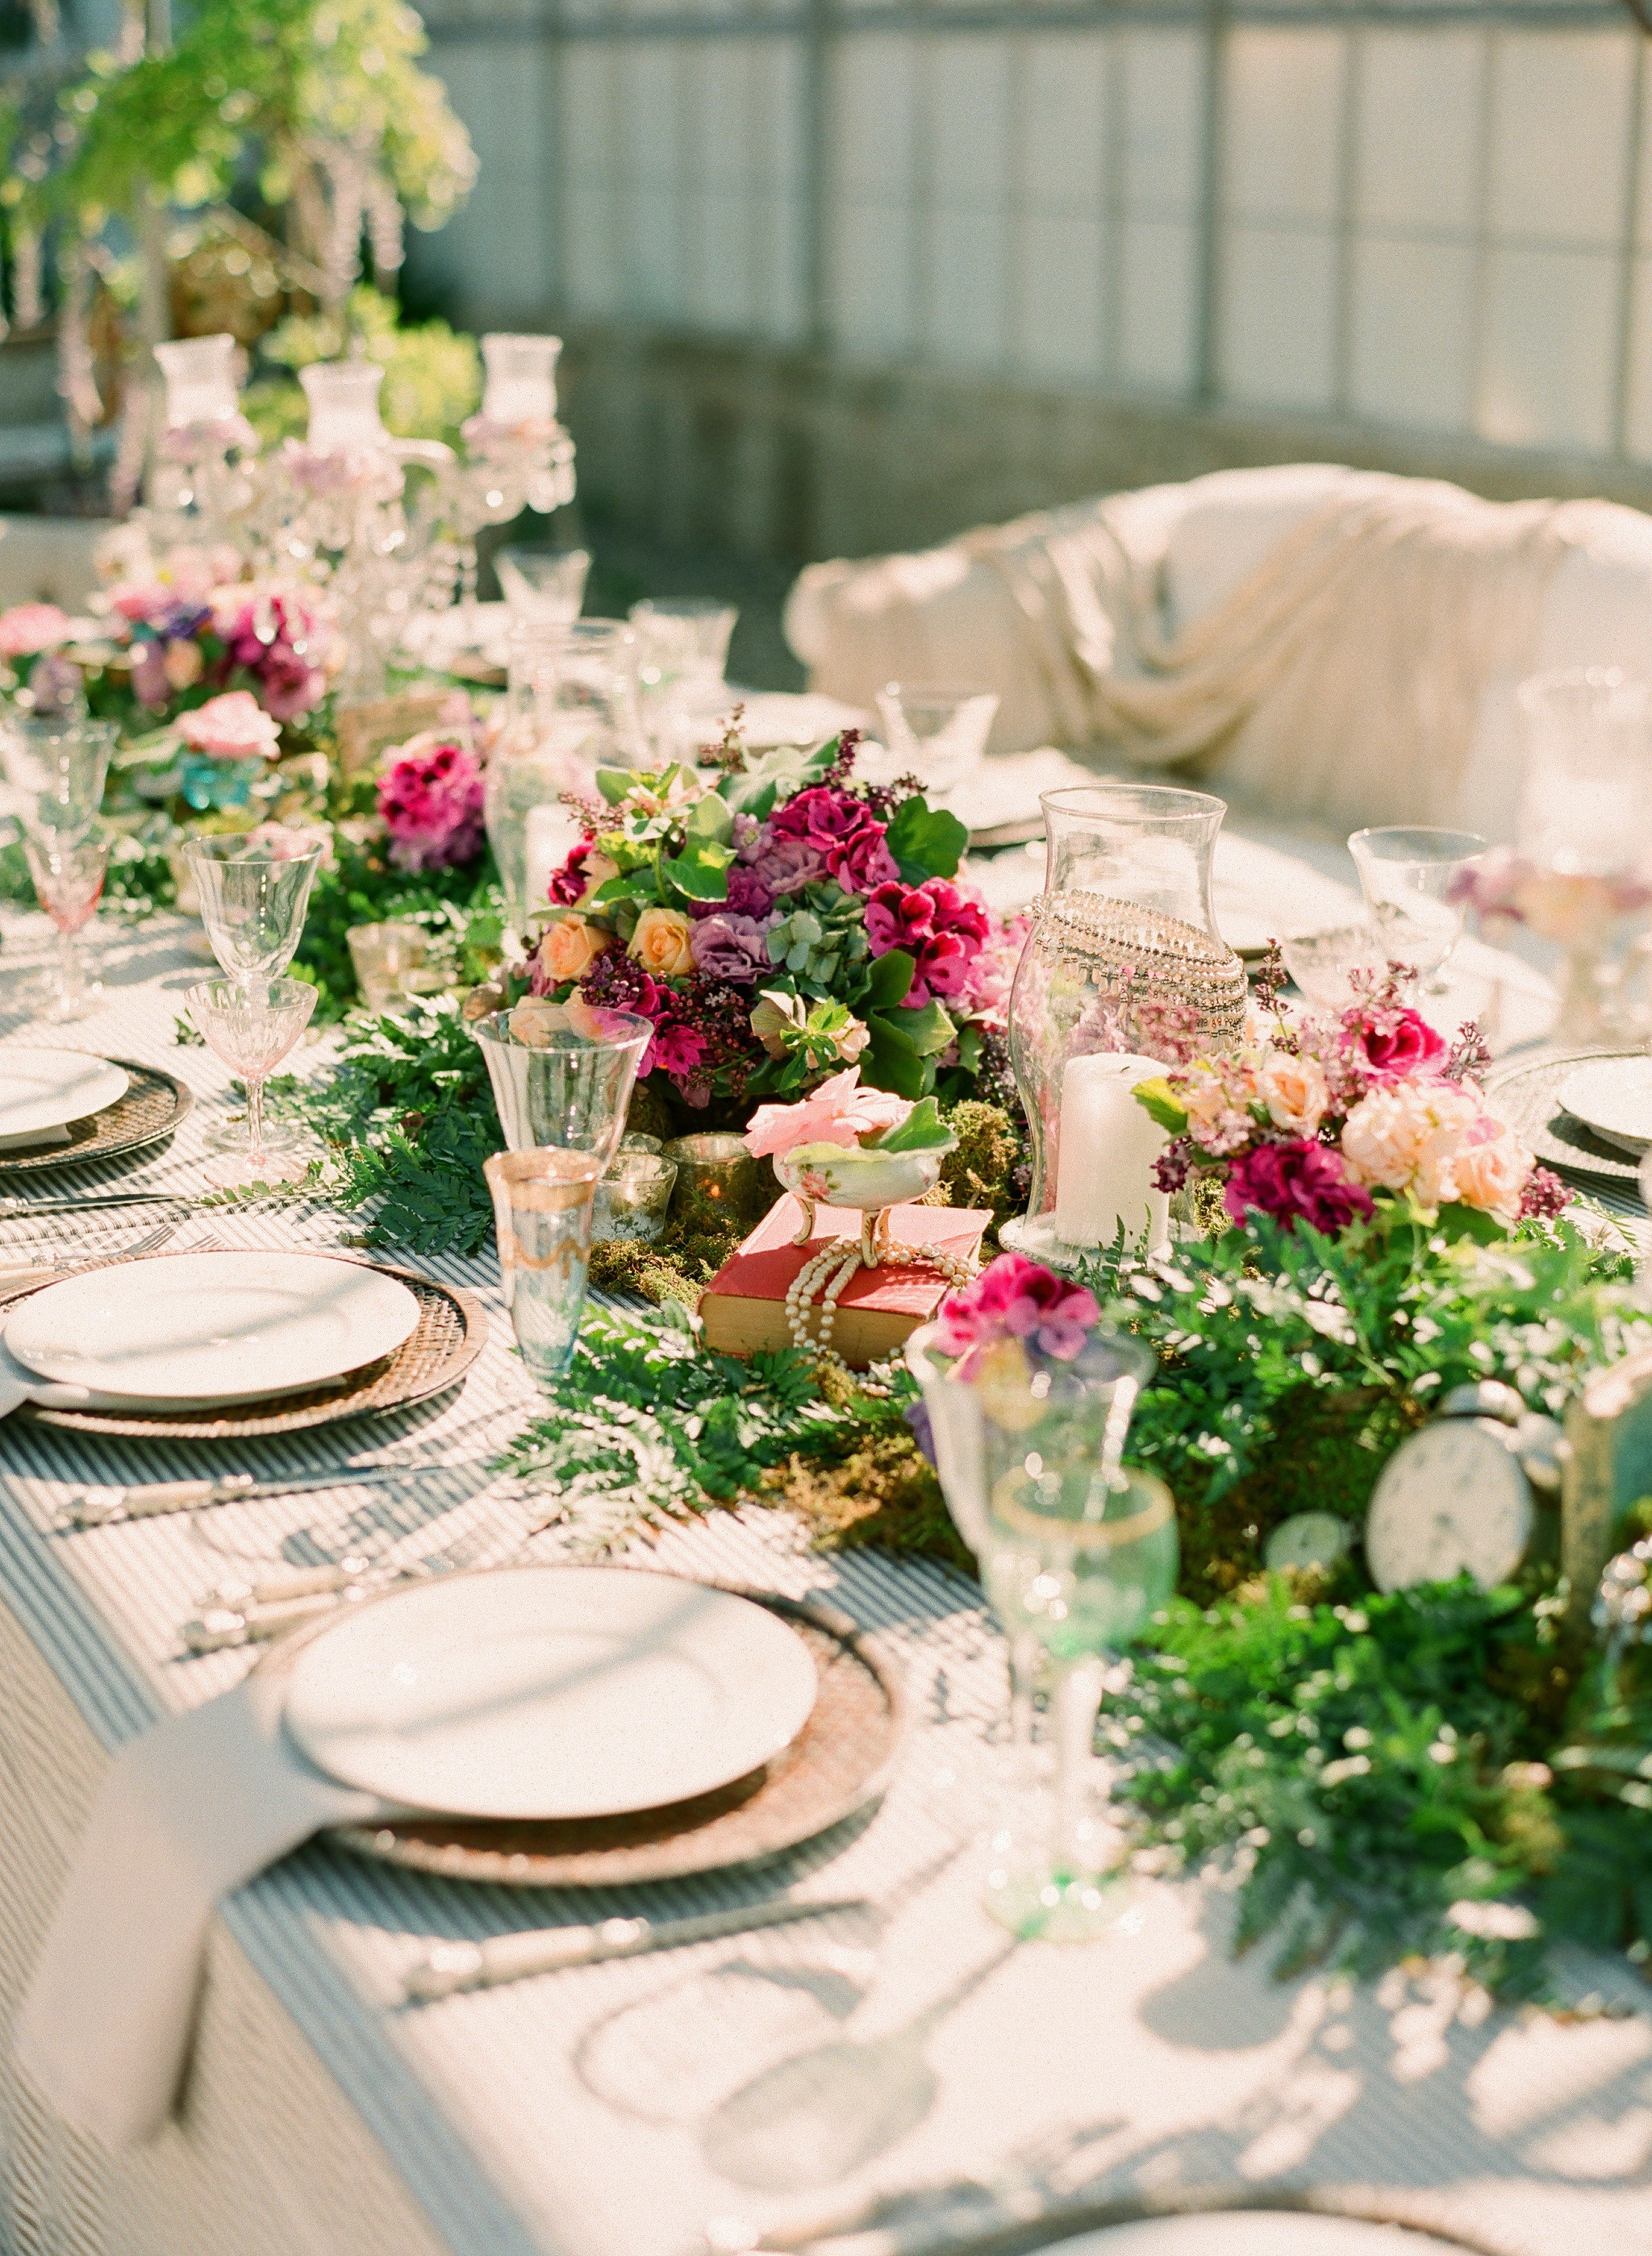 Styled-wedding-beaux-arts-tea-time-monique-lhuillier-santa-barbara-chic-flowers-table-setting-24.original